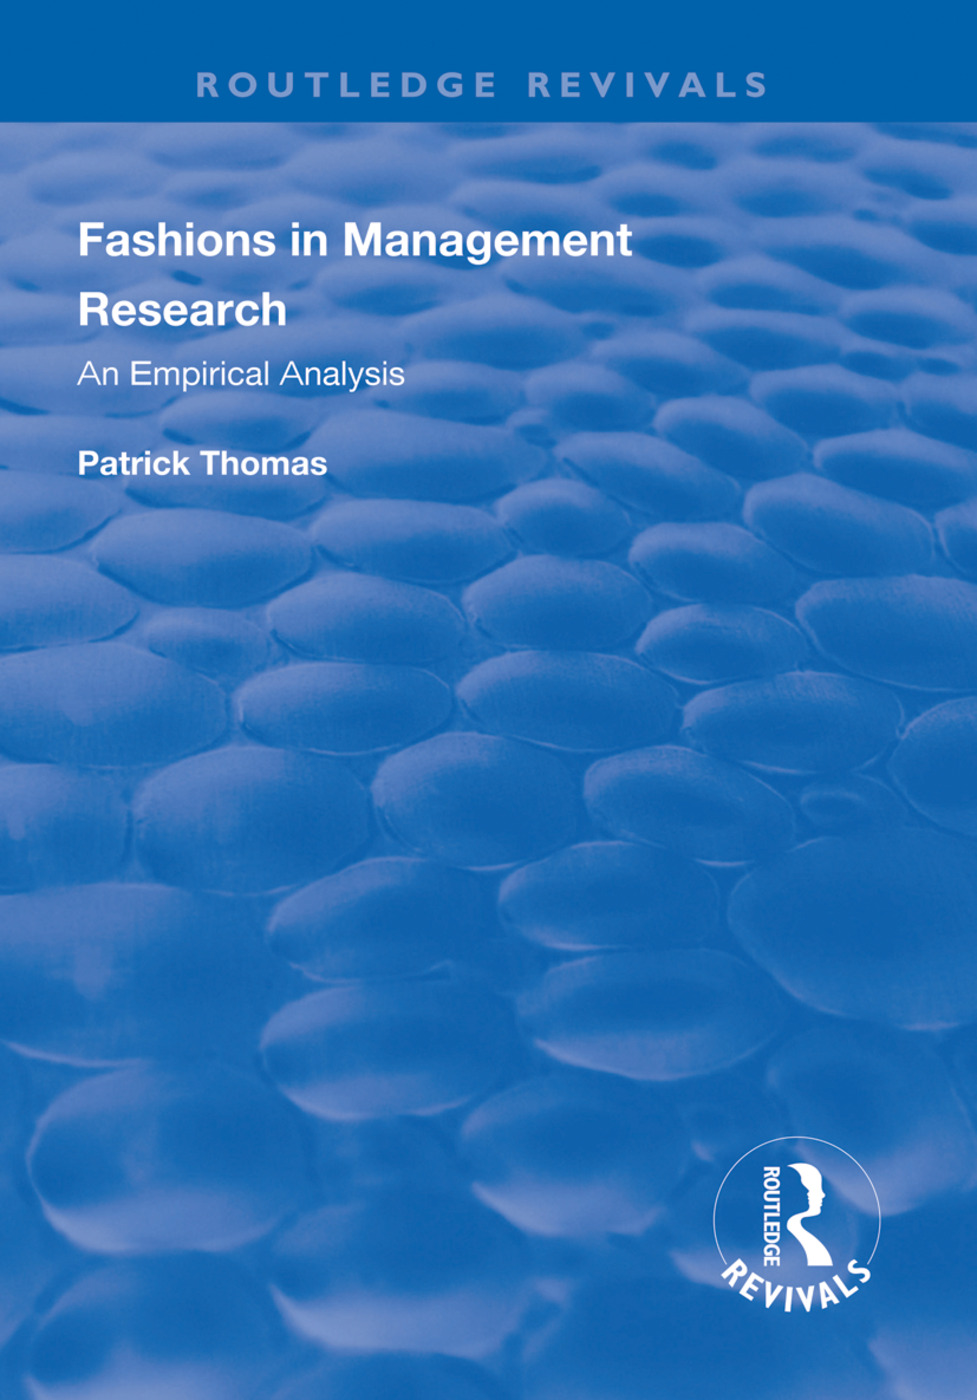 Fashions in Management Research